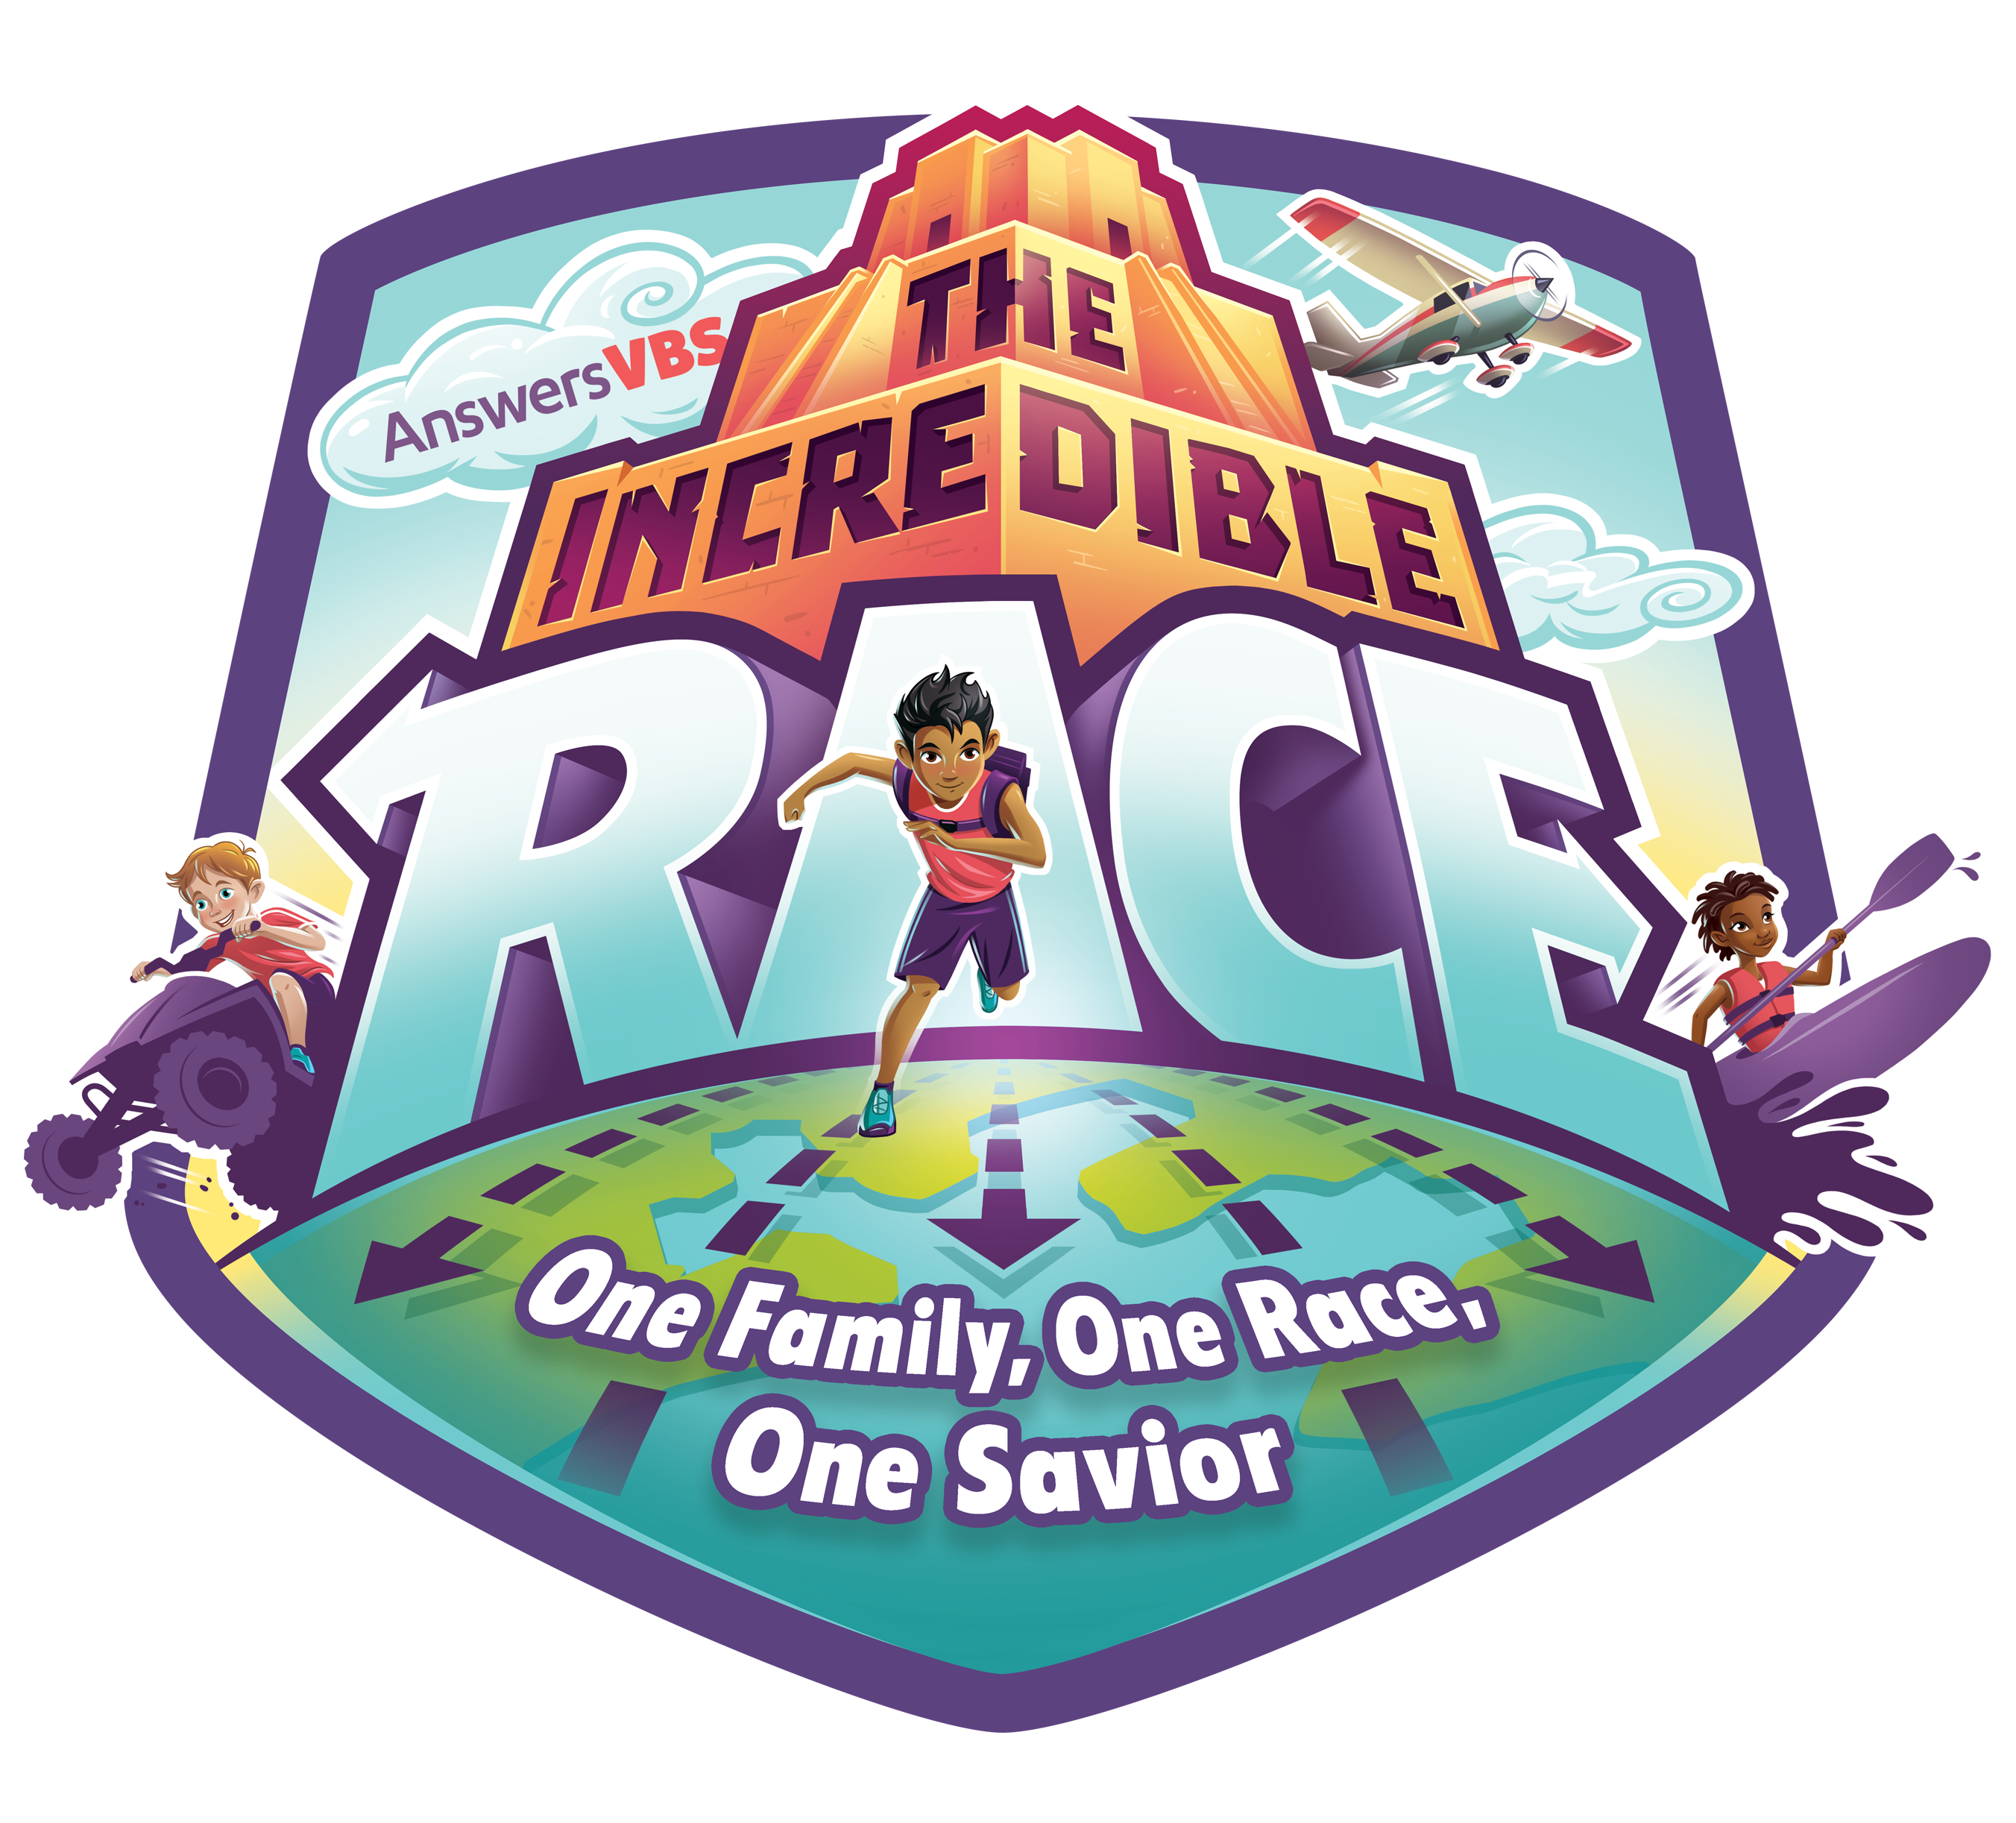 incredible-race-logo image